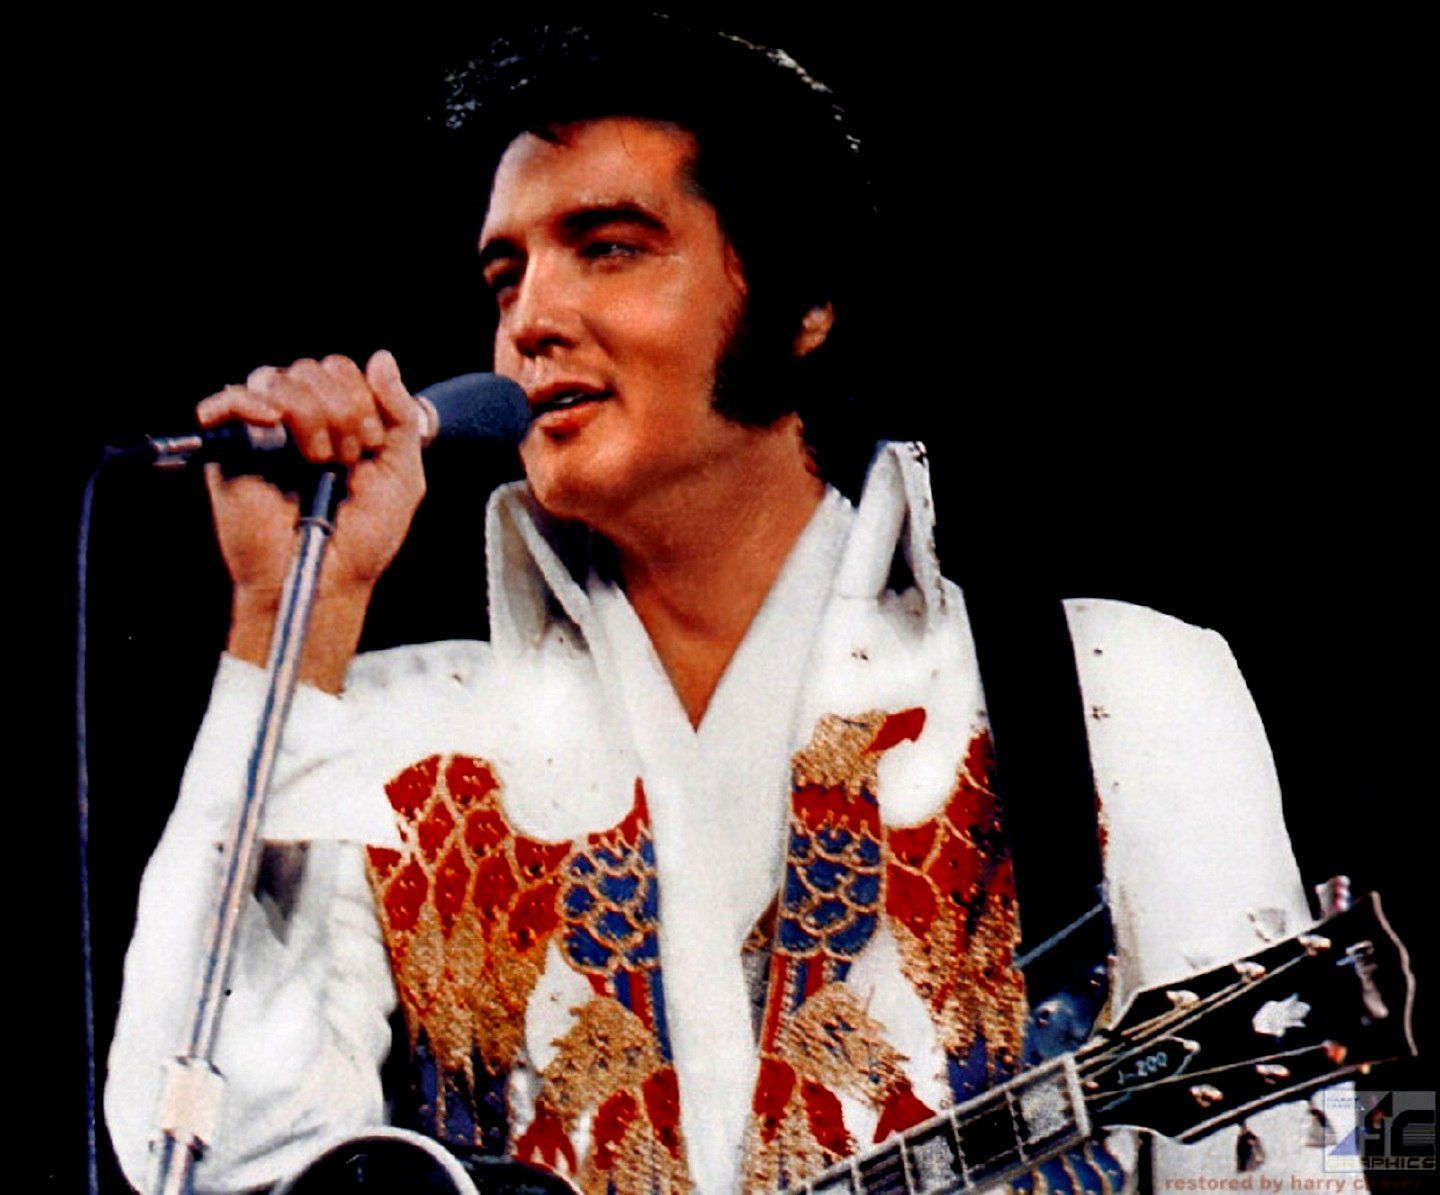 ELVIS LIVE IN 1974 ELVIS LIVE ON STAGE 50'S 60'S 70'S